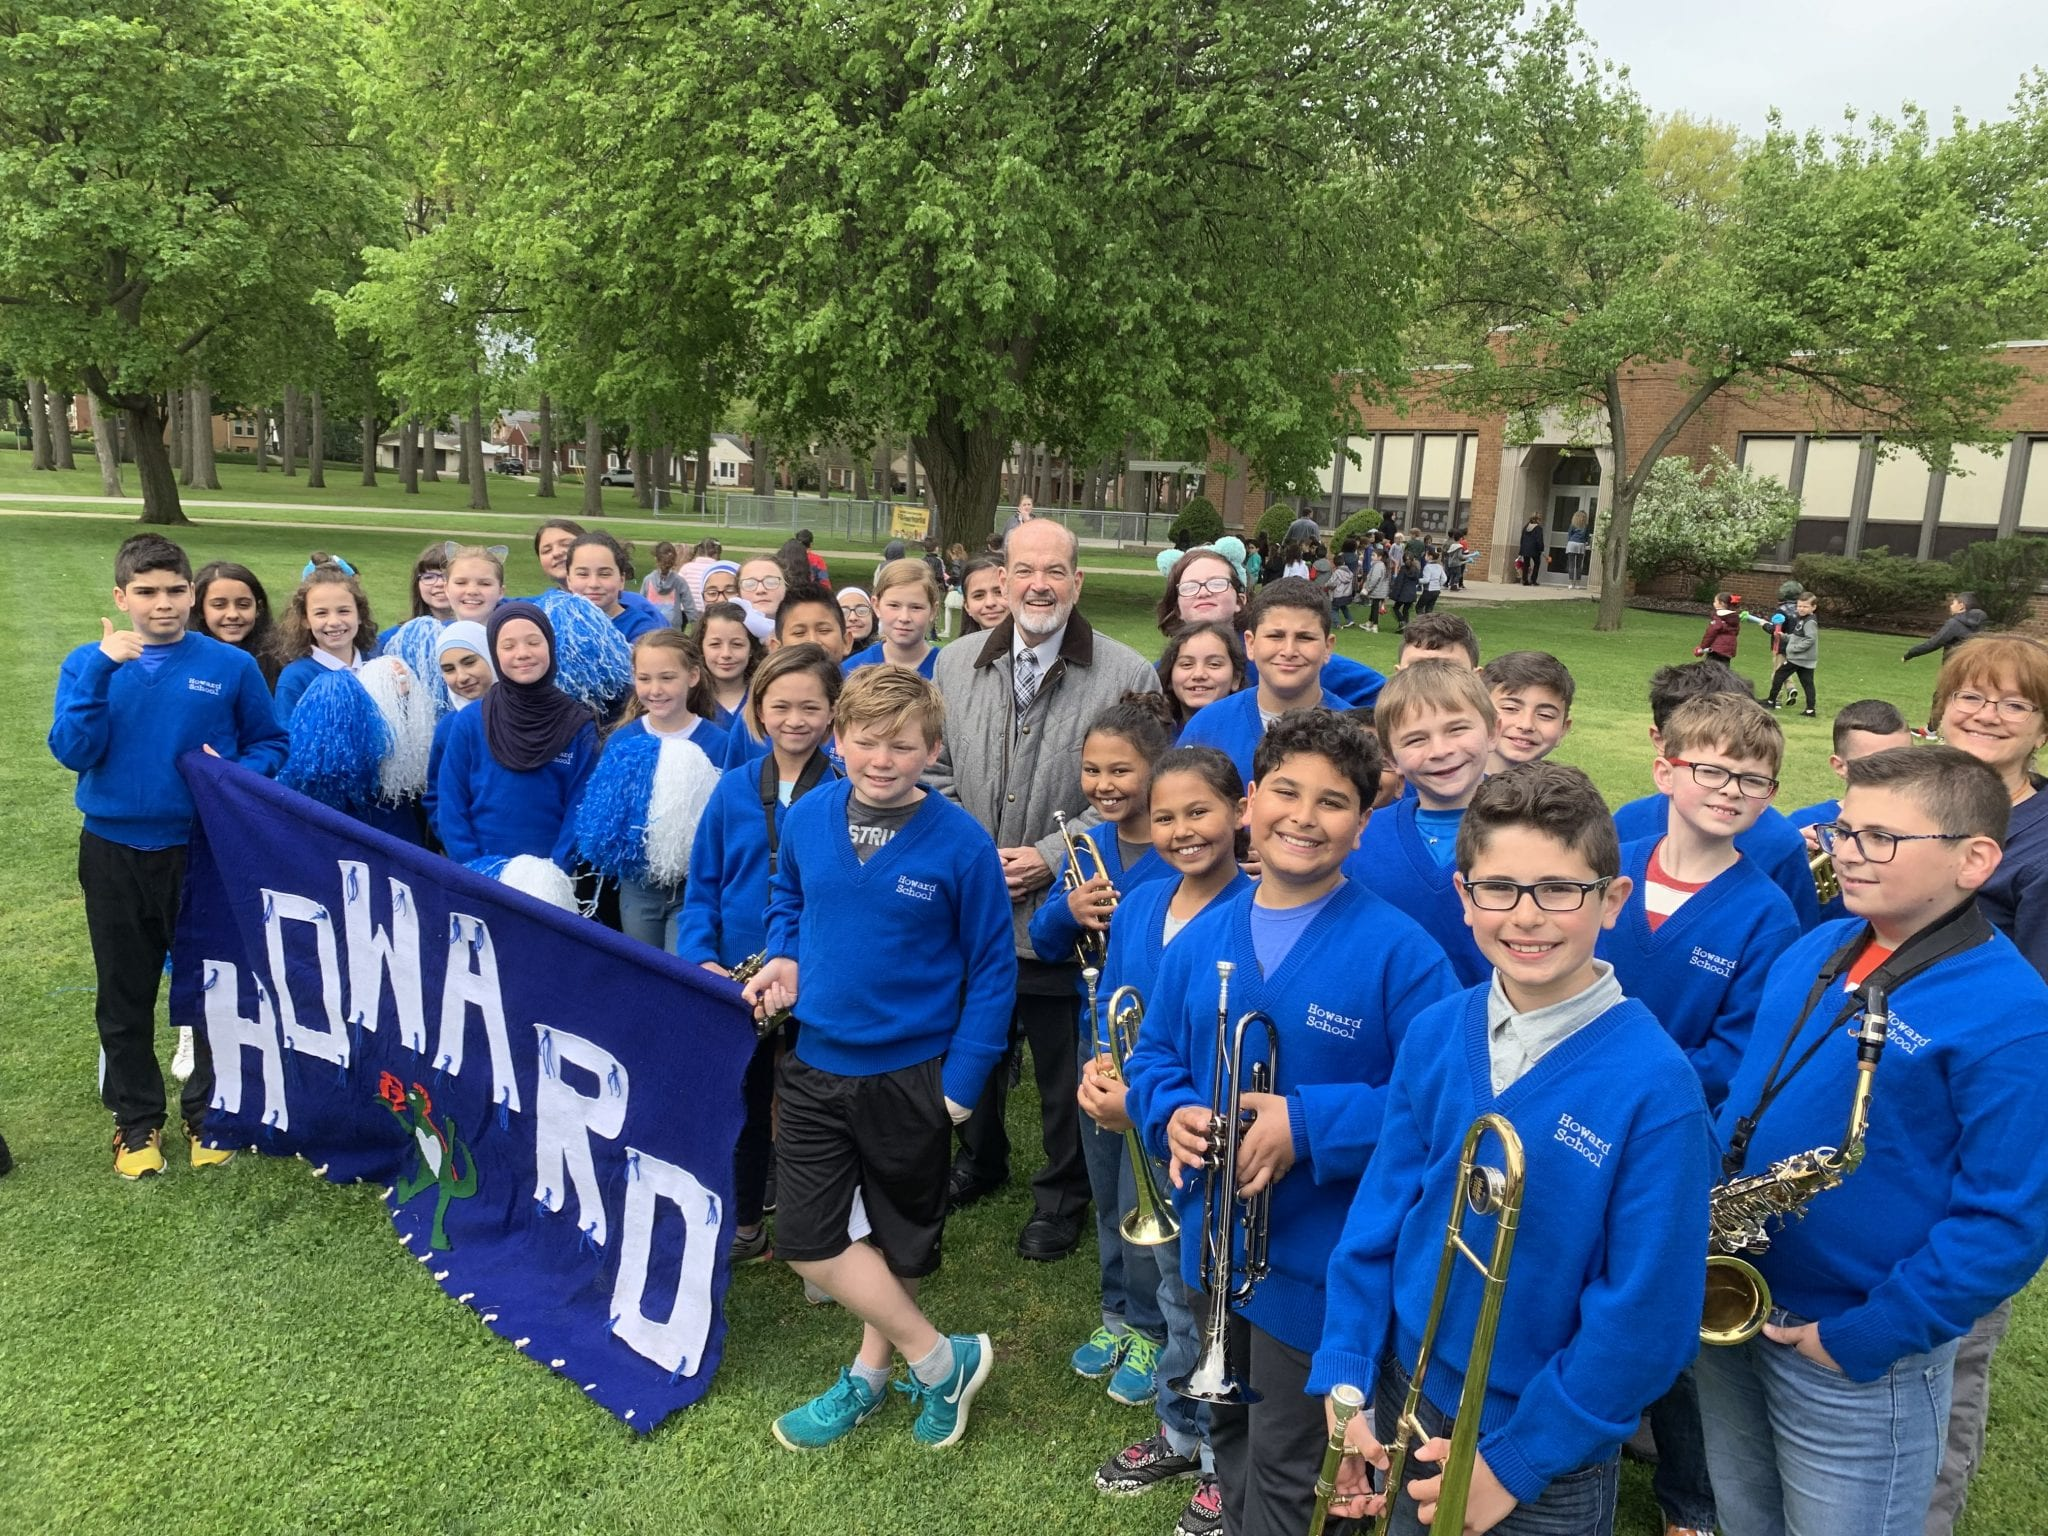 Howard Band and Poms pose with Mayor O'Reilly